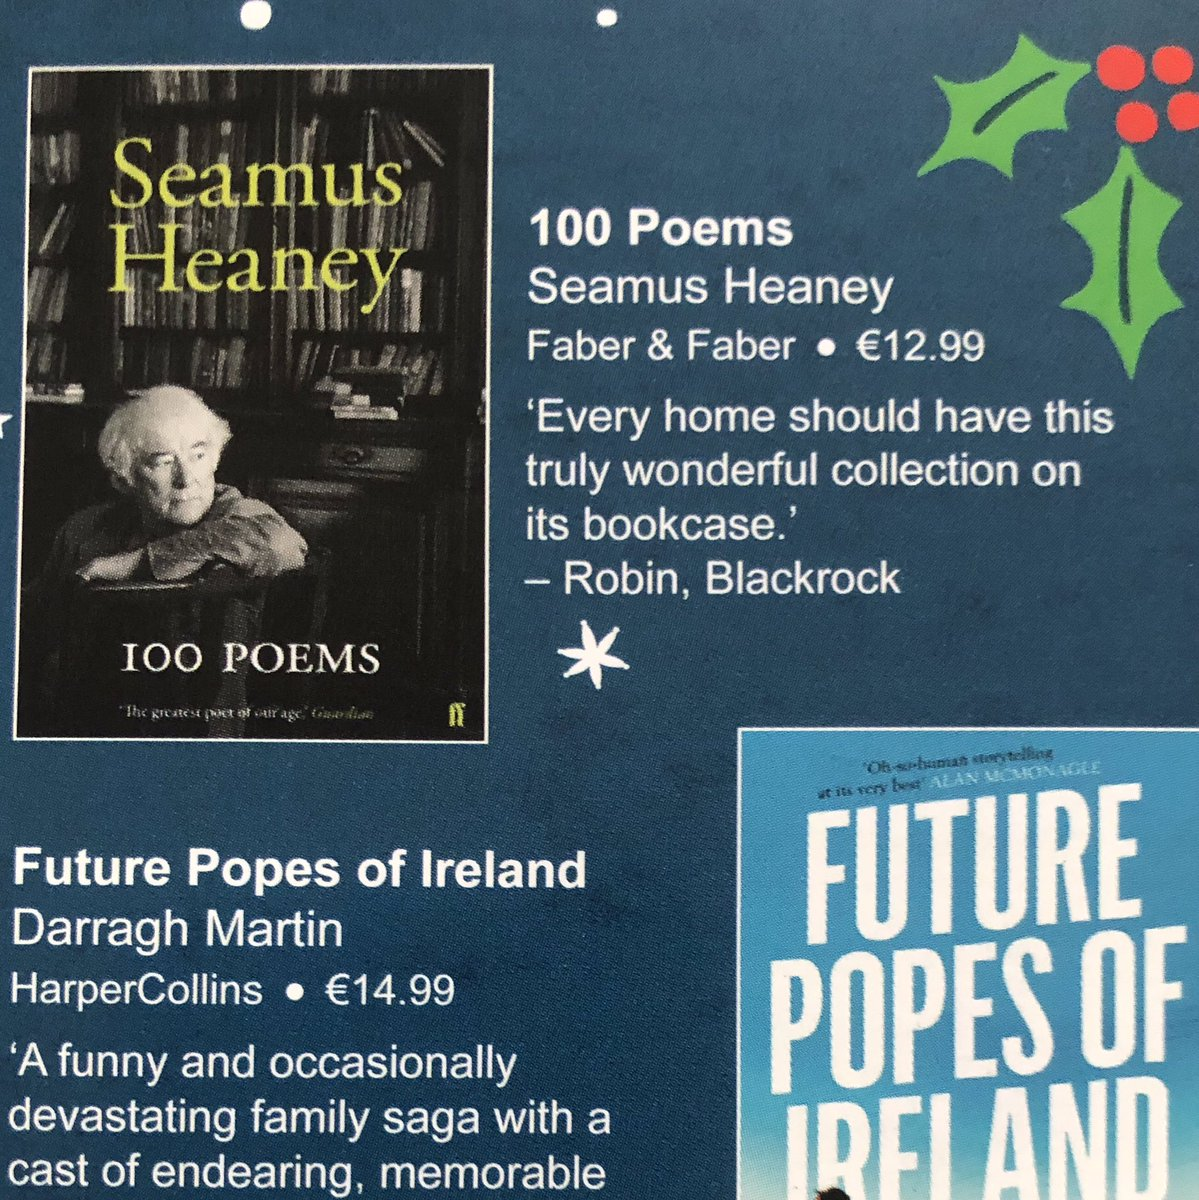 Lovely recommendation for #SeamusHeaney100poems from @DubrayBooks today!